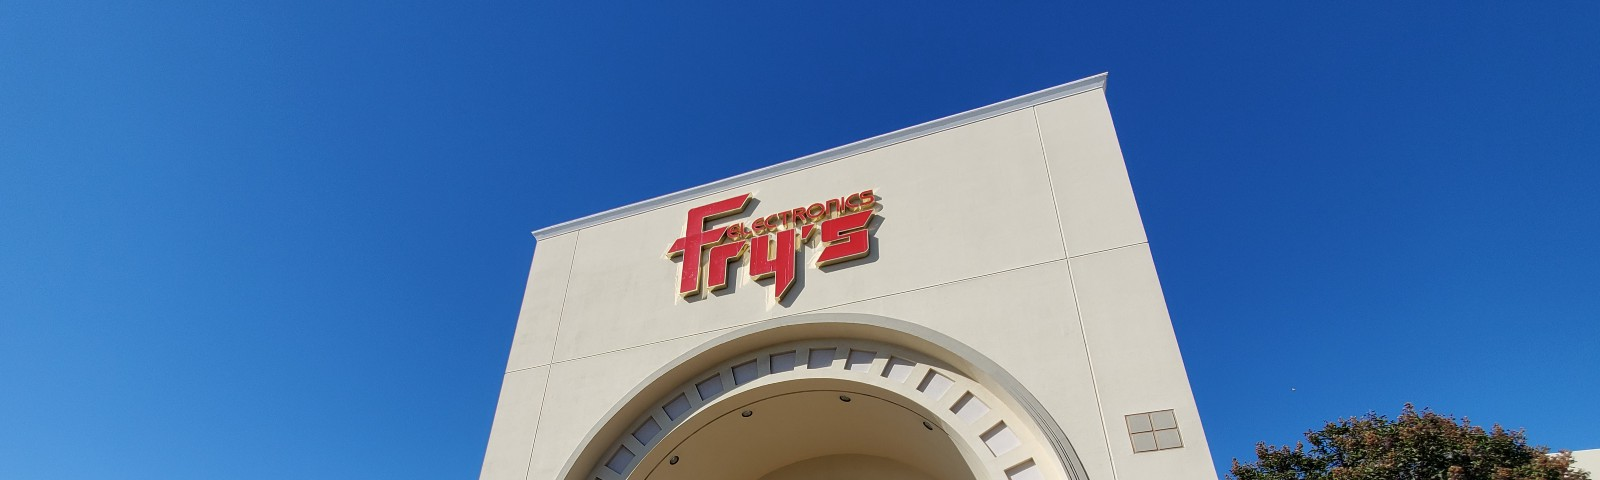 Photo of a Fry's Electronics store entrance from outside.